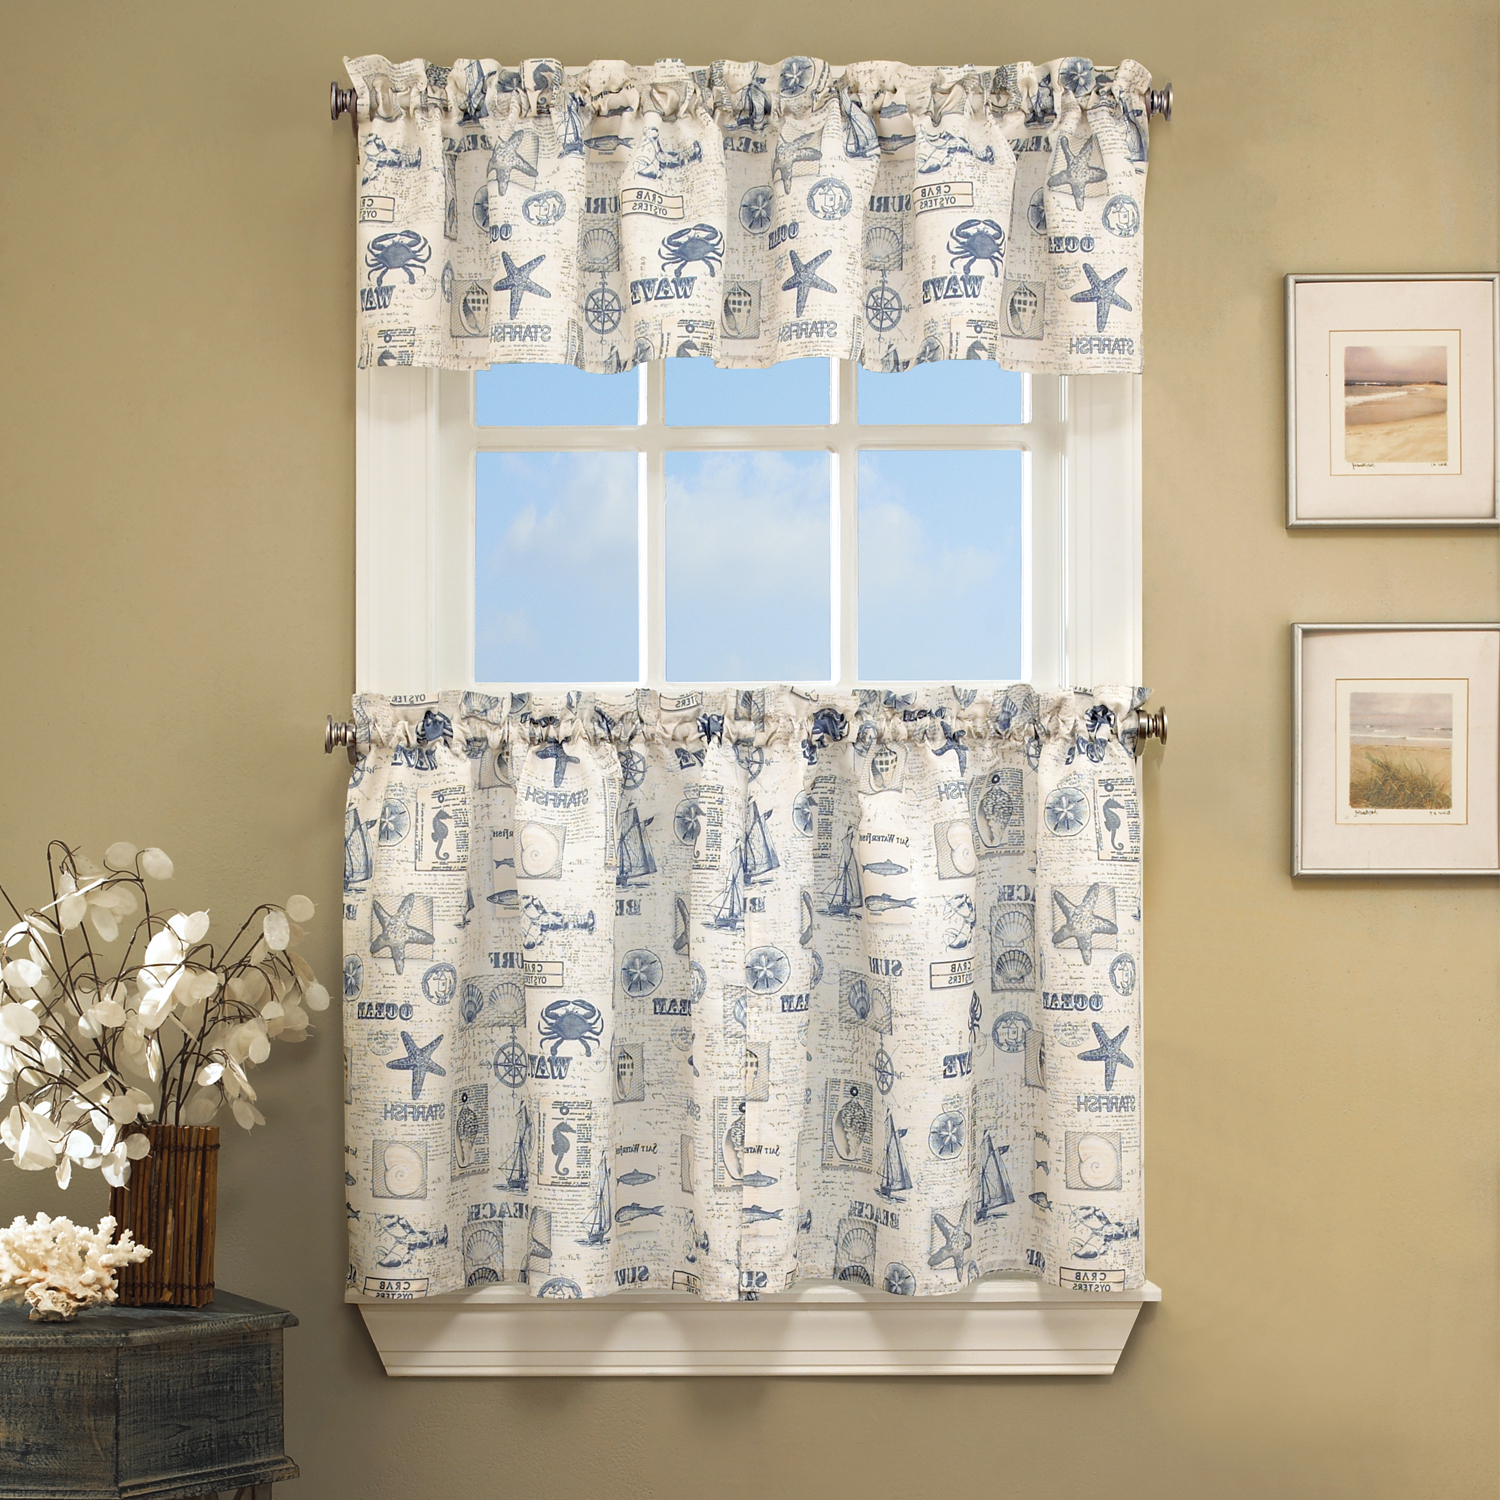 Most Recently Released Tranquility Curtain Tier Pairs With Regard To Details Aboutthe Sea Printed Ocean Beach Images Kitchen Curtains Tiers  Or Valance (Gallery 10 of 20)